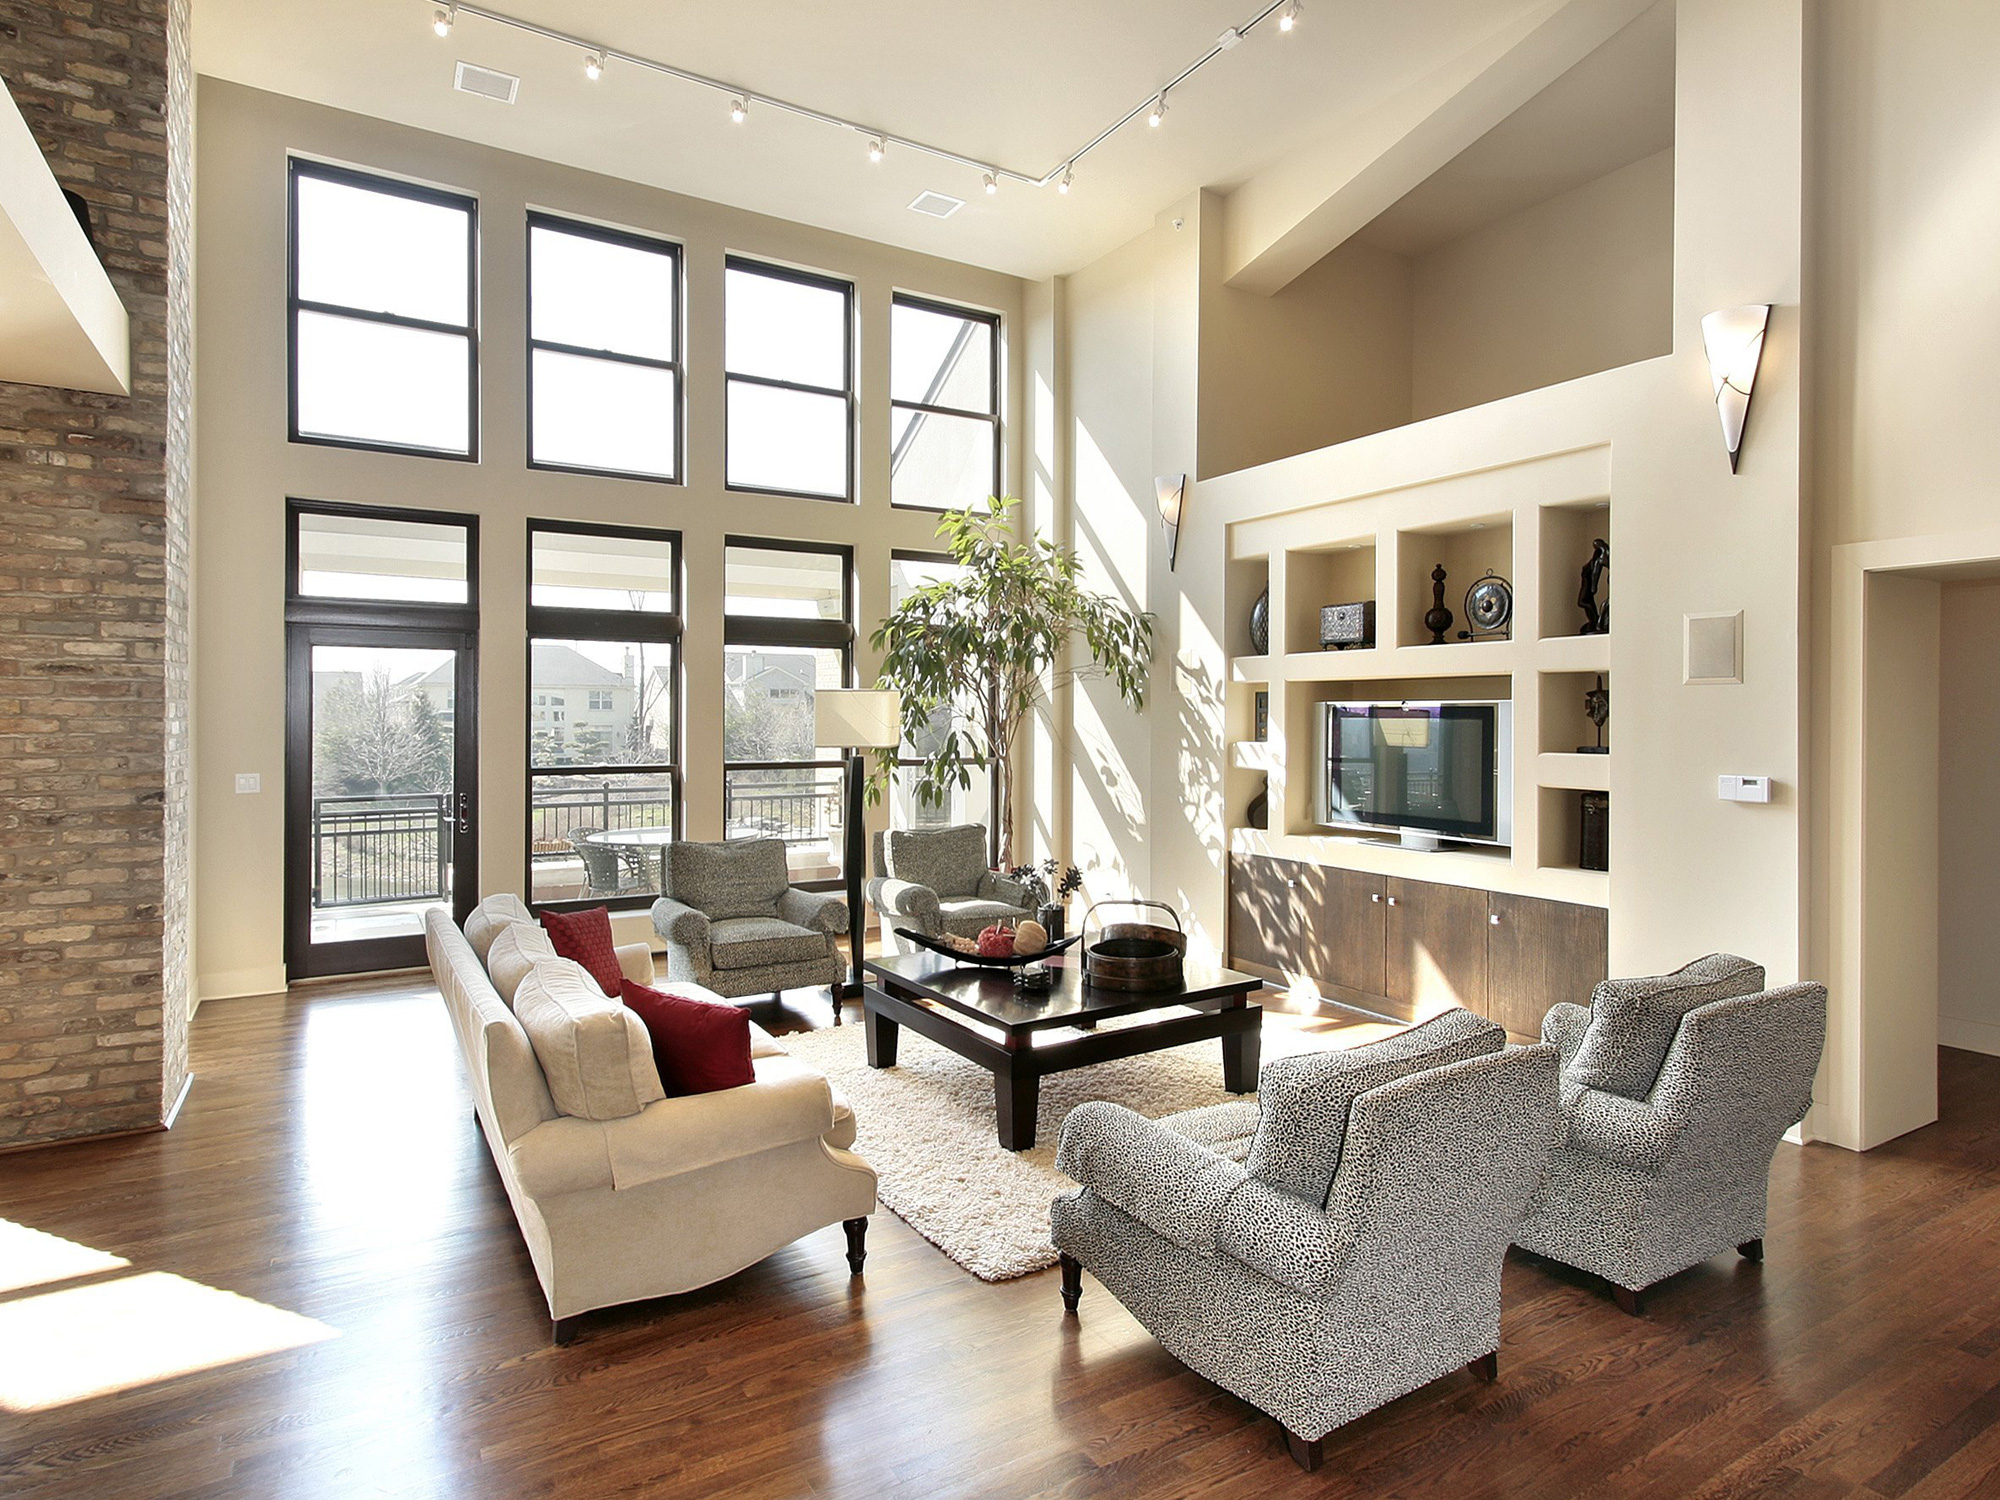 Home Staging Interior Design   Home Staging Design